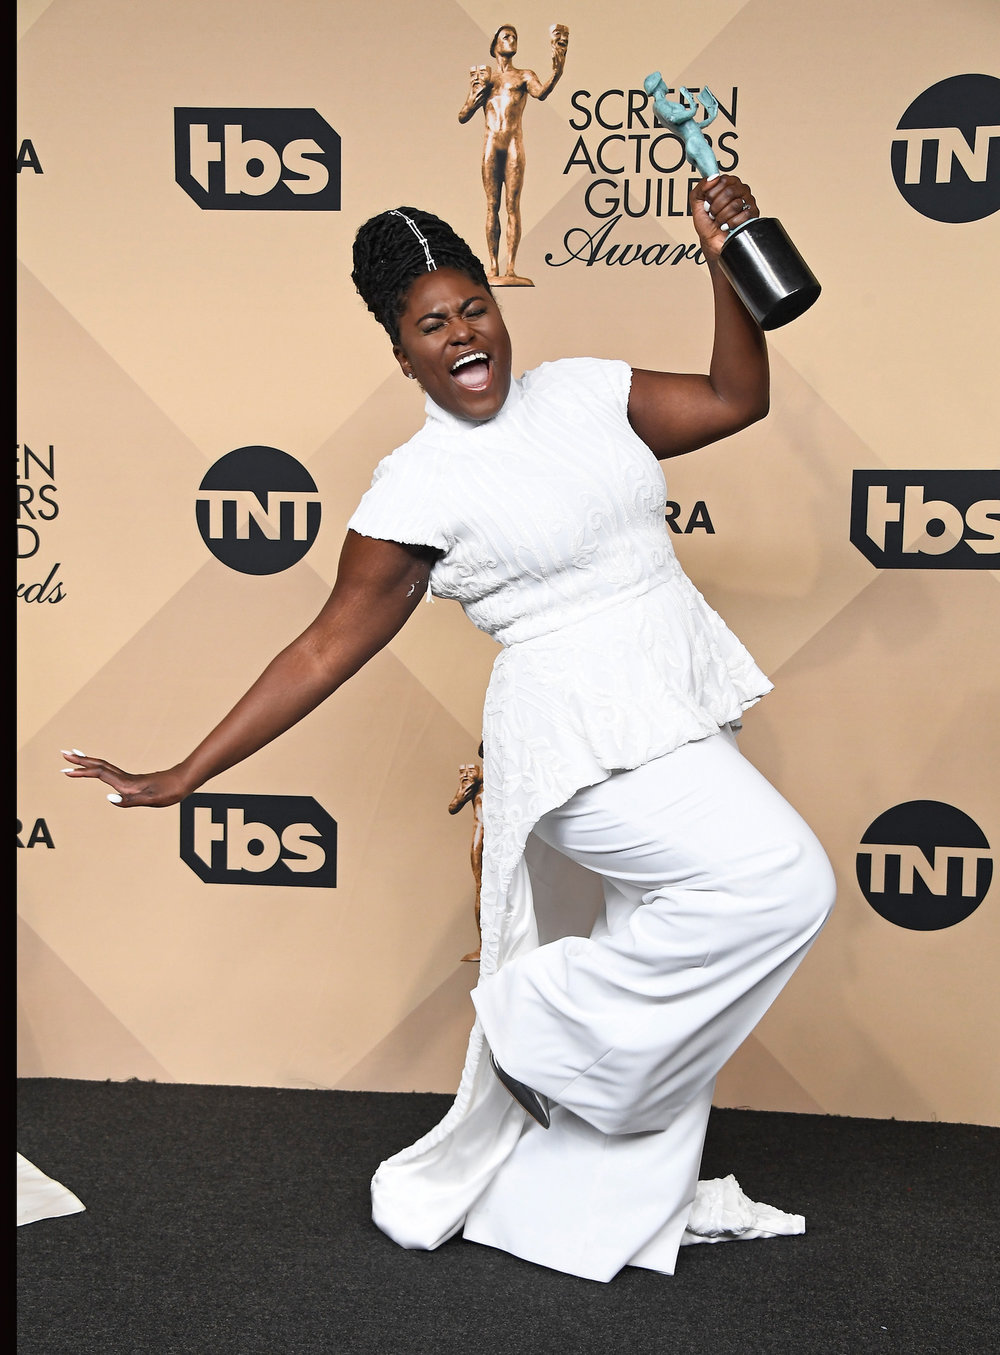 LOS ANGELES, CA - JANUARY 29:  Actor Danielle Brooks, co-winner of the Outstanding Performance by an Ensemble in a Comedy Series award for 'Orange Is the New Black,' poses in the press room during The 23rd Annual Screen Actors Guild Awards at The Shrine Auditorium on January 29, 2017 in Los Angeles, California. 26592_008  (Photo by Frazer Harrison/Getty Images) *** Local Caption *** Danielle Brooks